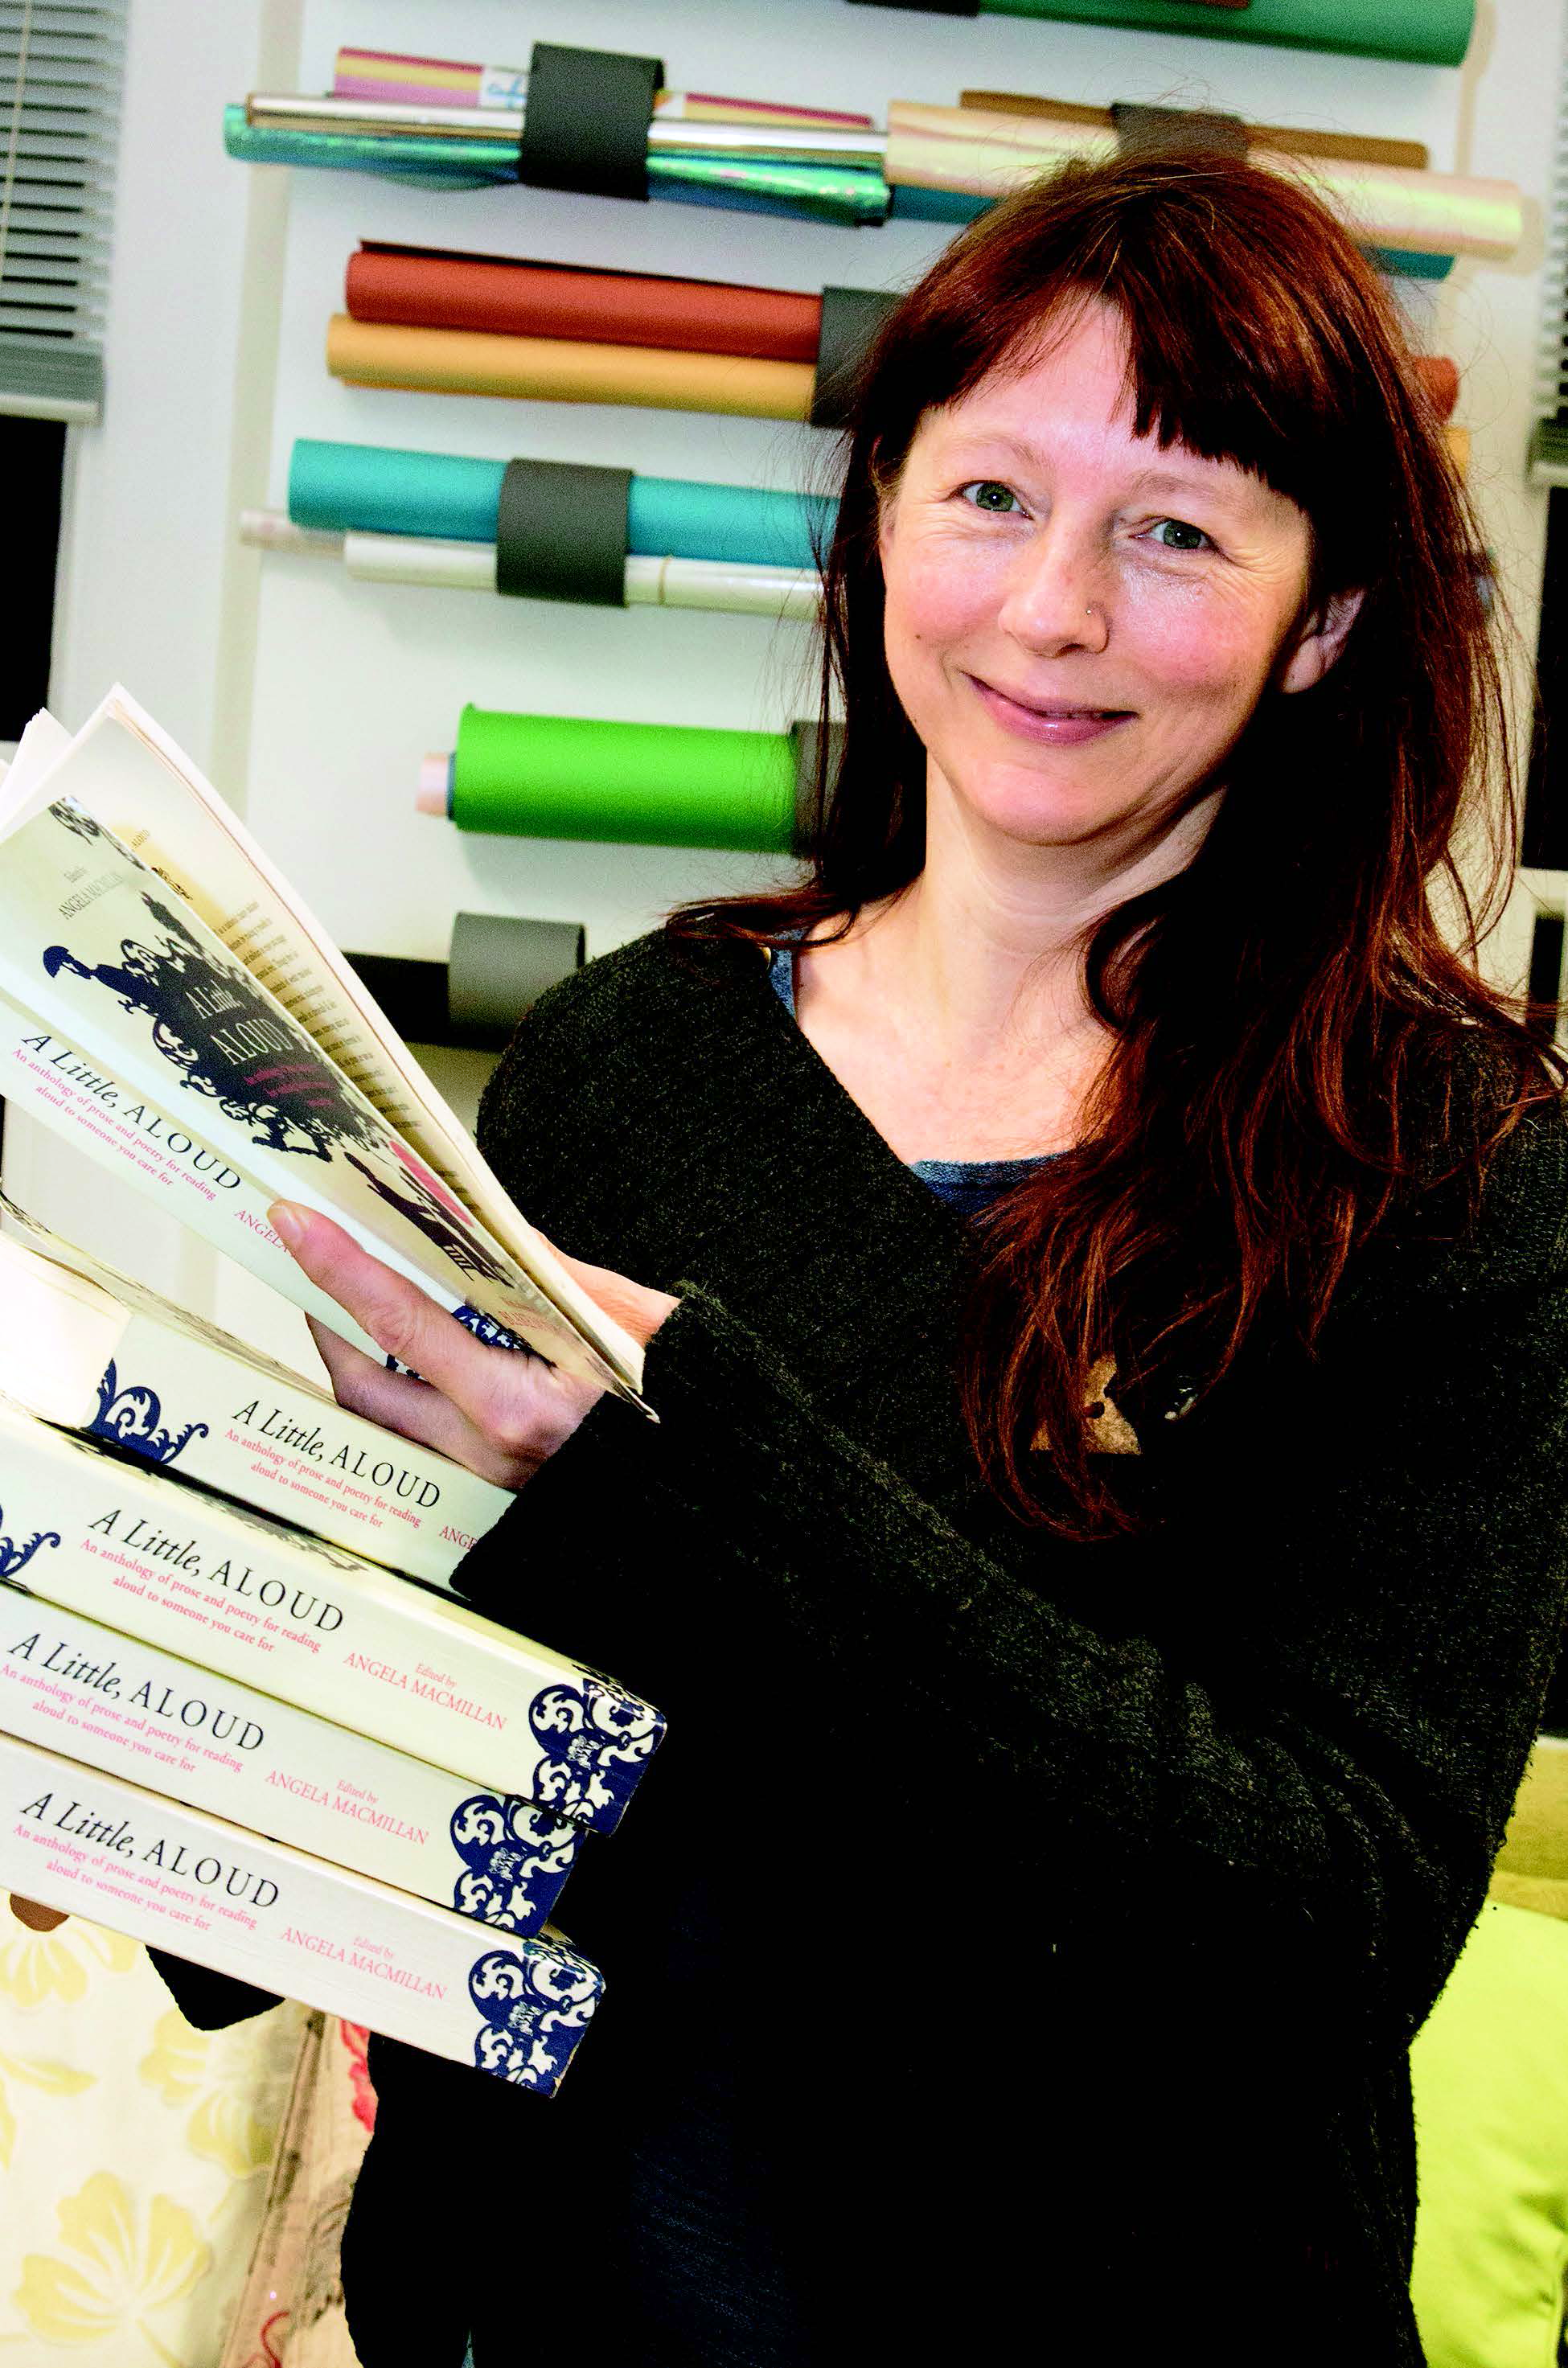 Open Book lead reader Em Strang. Photo credit: Dumfries and Galloway Life magazine (c) 2018